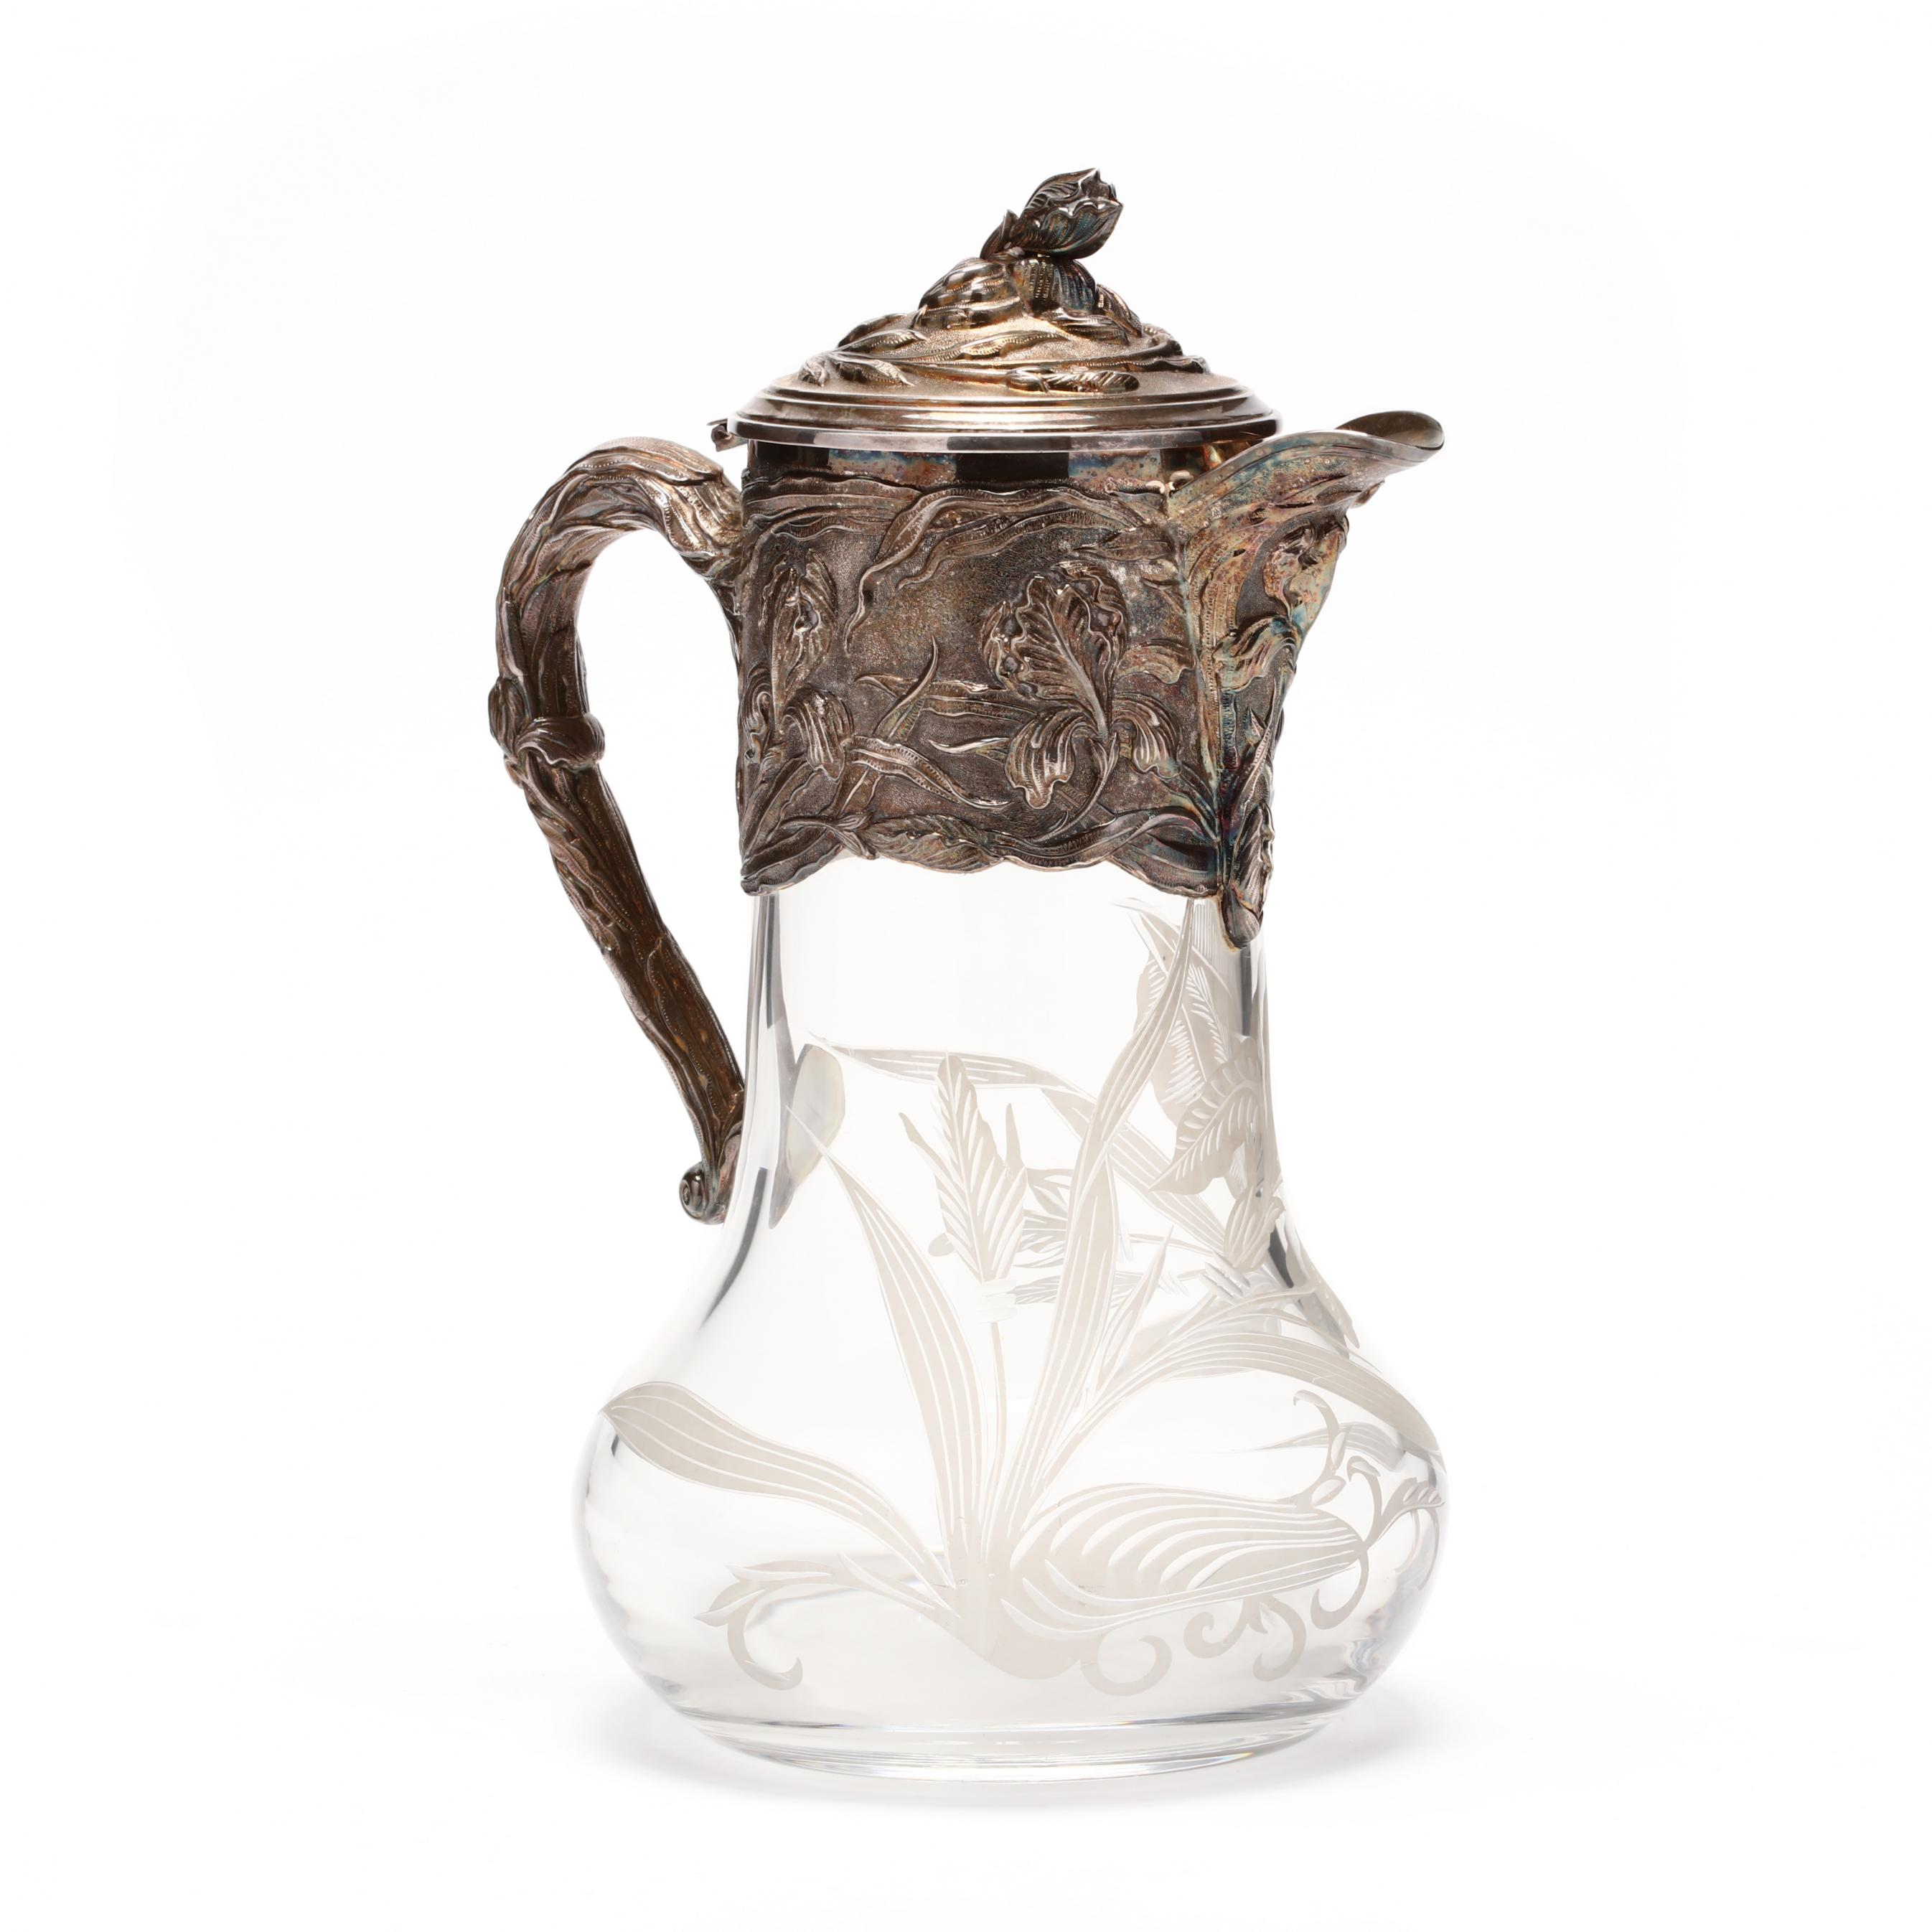 silverplate-and-etched-glass-art-nouveau-wine-ewer